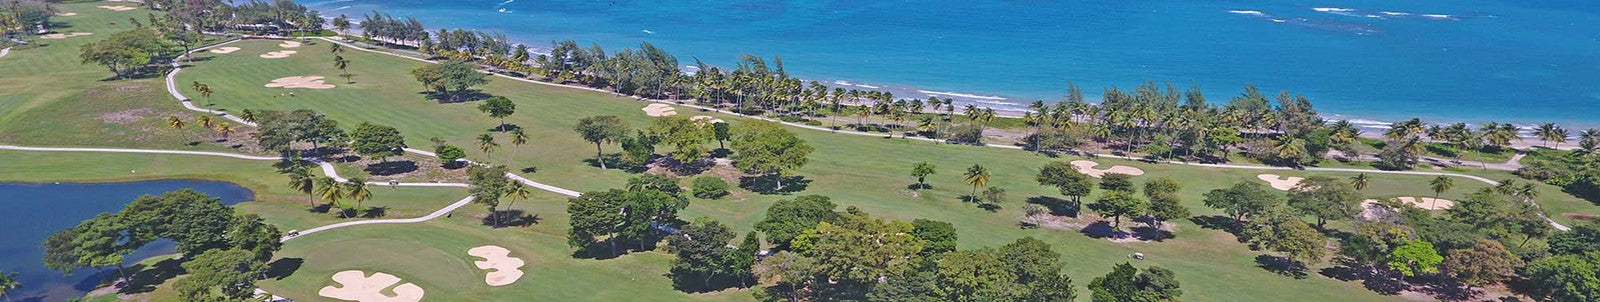 Golf Courses Puerto Rico